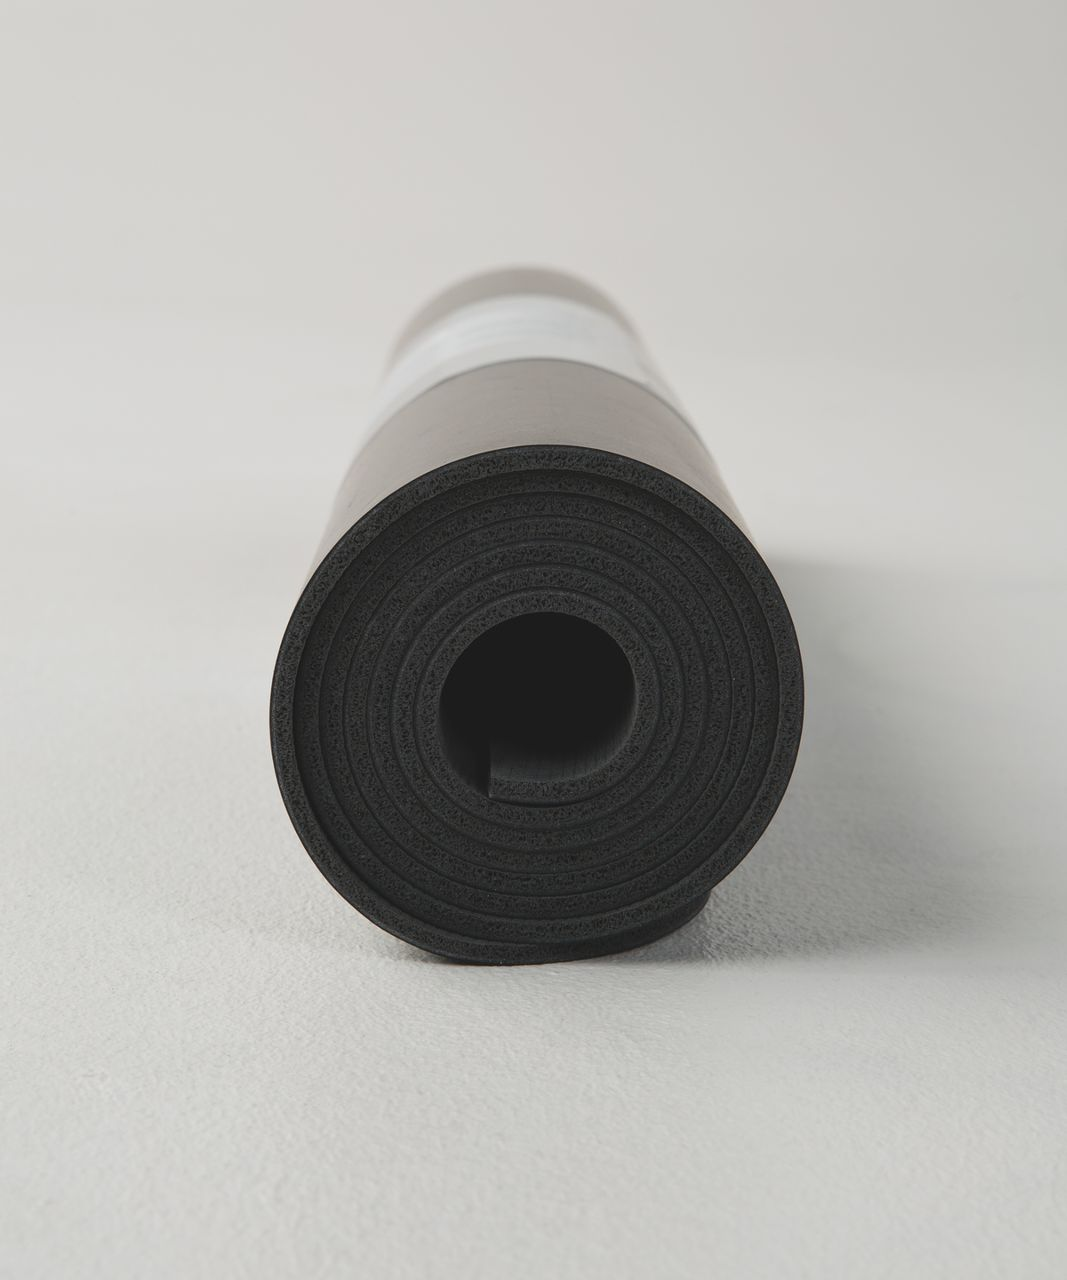 Lululemon The Reversible Mat 5mm - Black